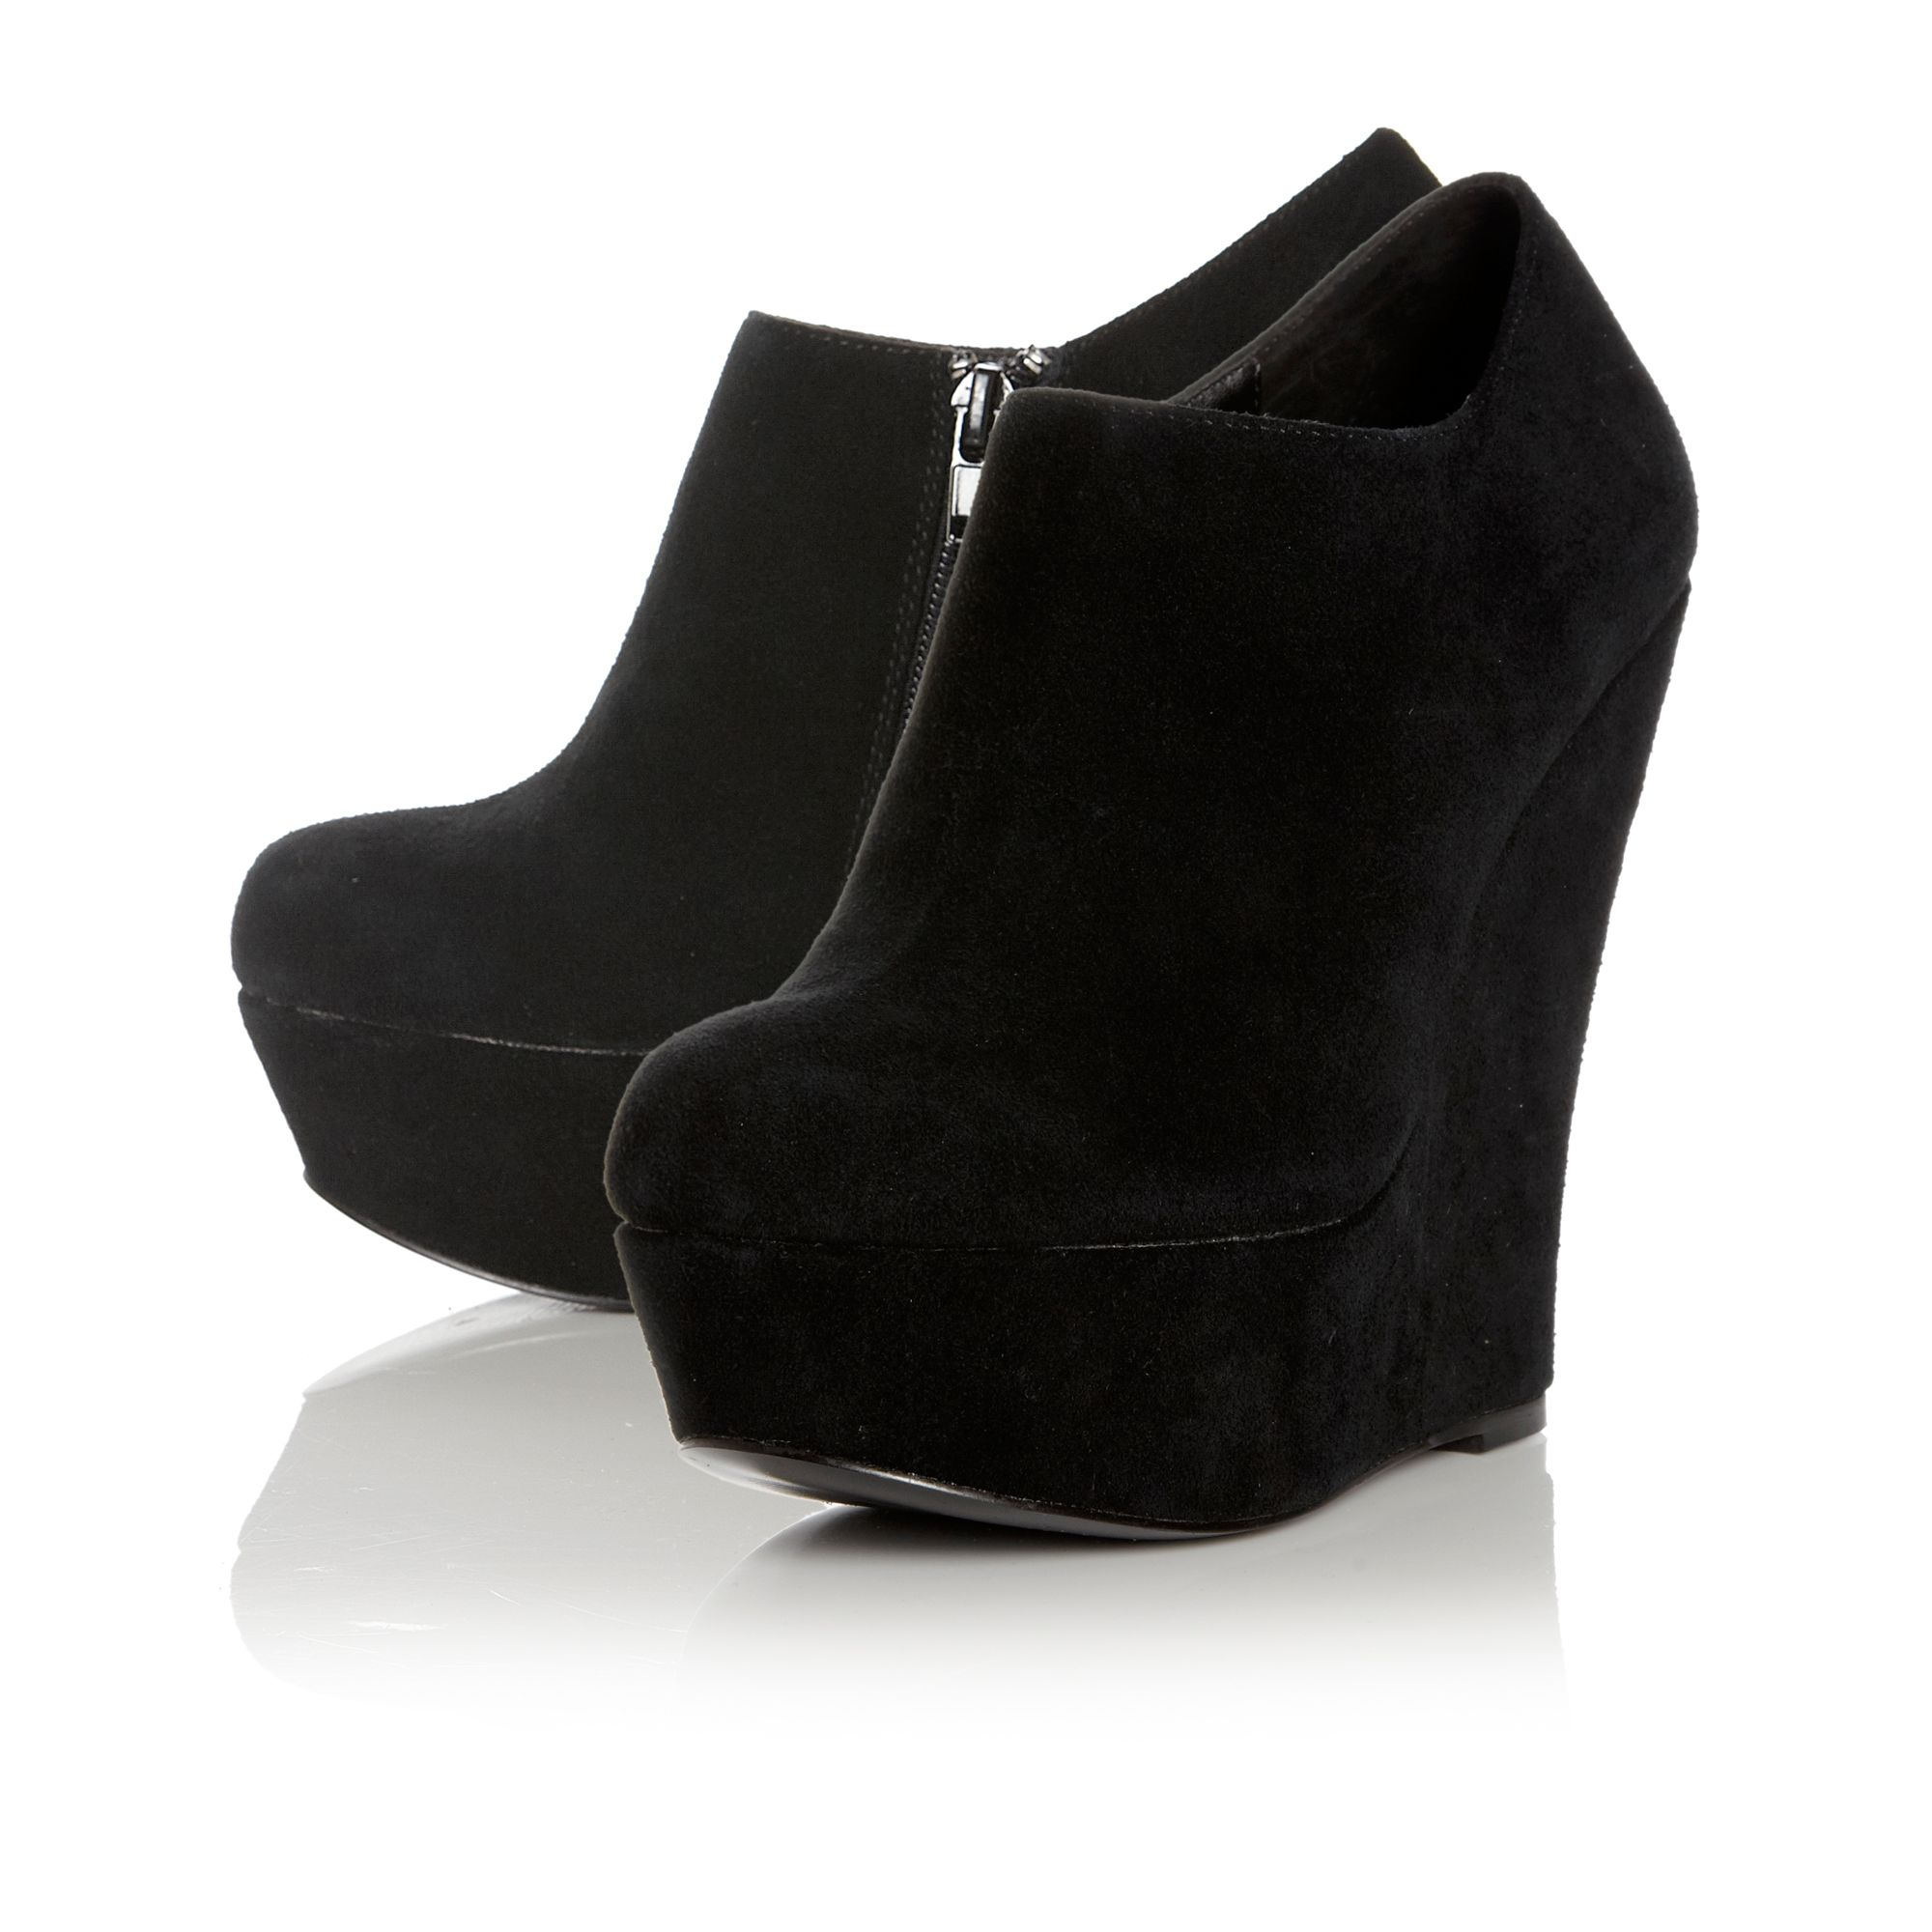 Steve madden Presure Sm Platform Wedge Ankle Boots in Black | Lyst